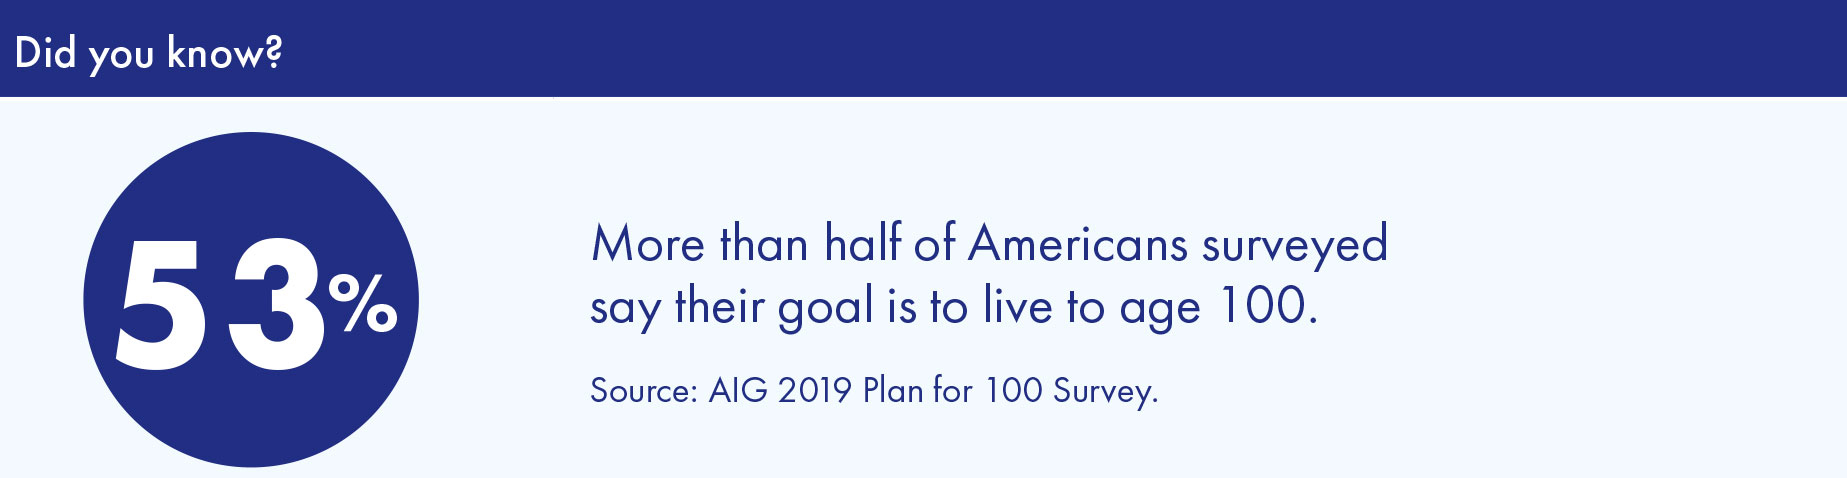 More than half of Americans surveyed say their goals is to live to age 100.